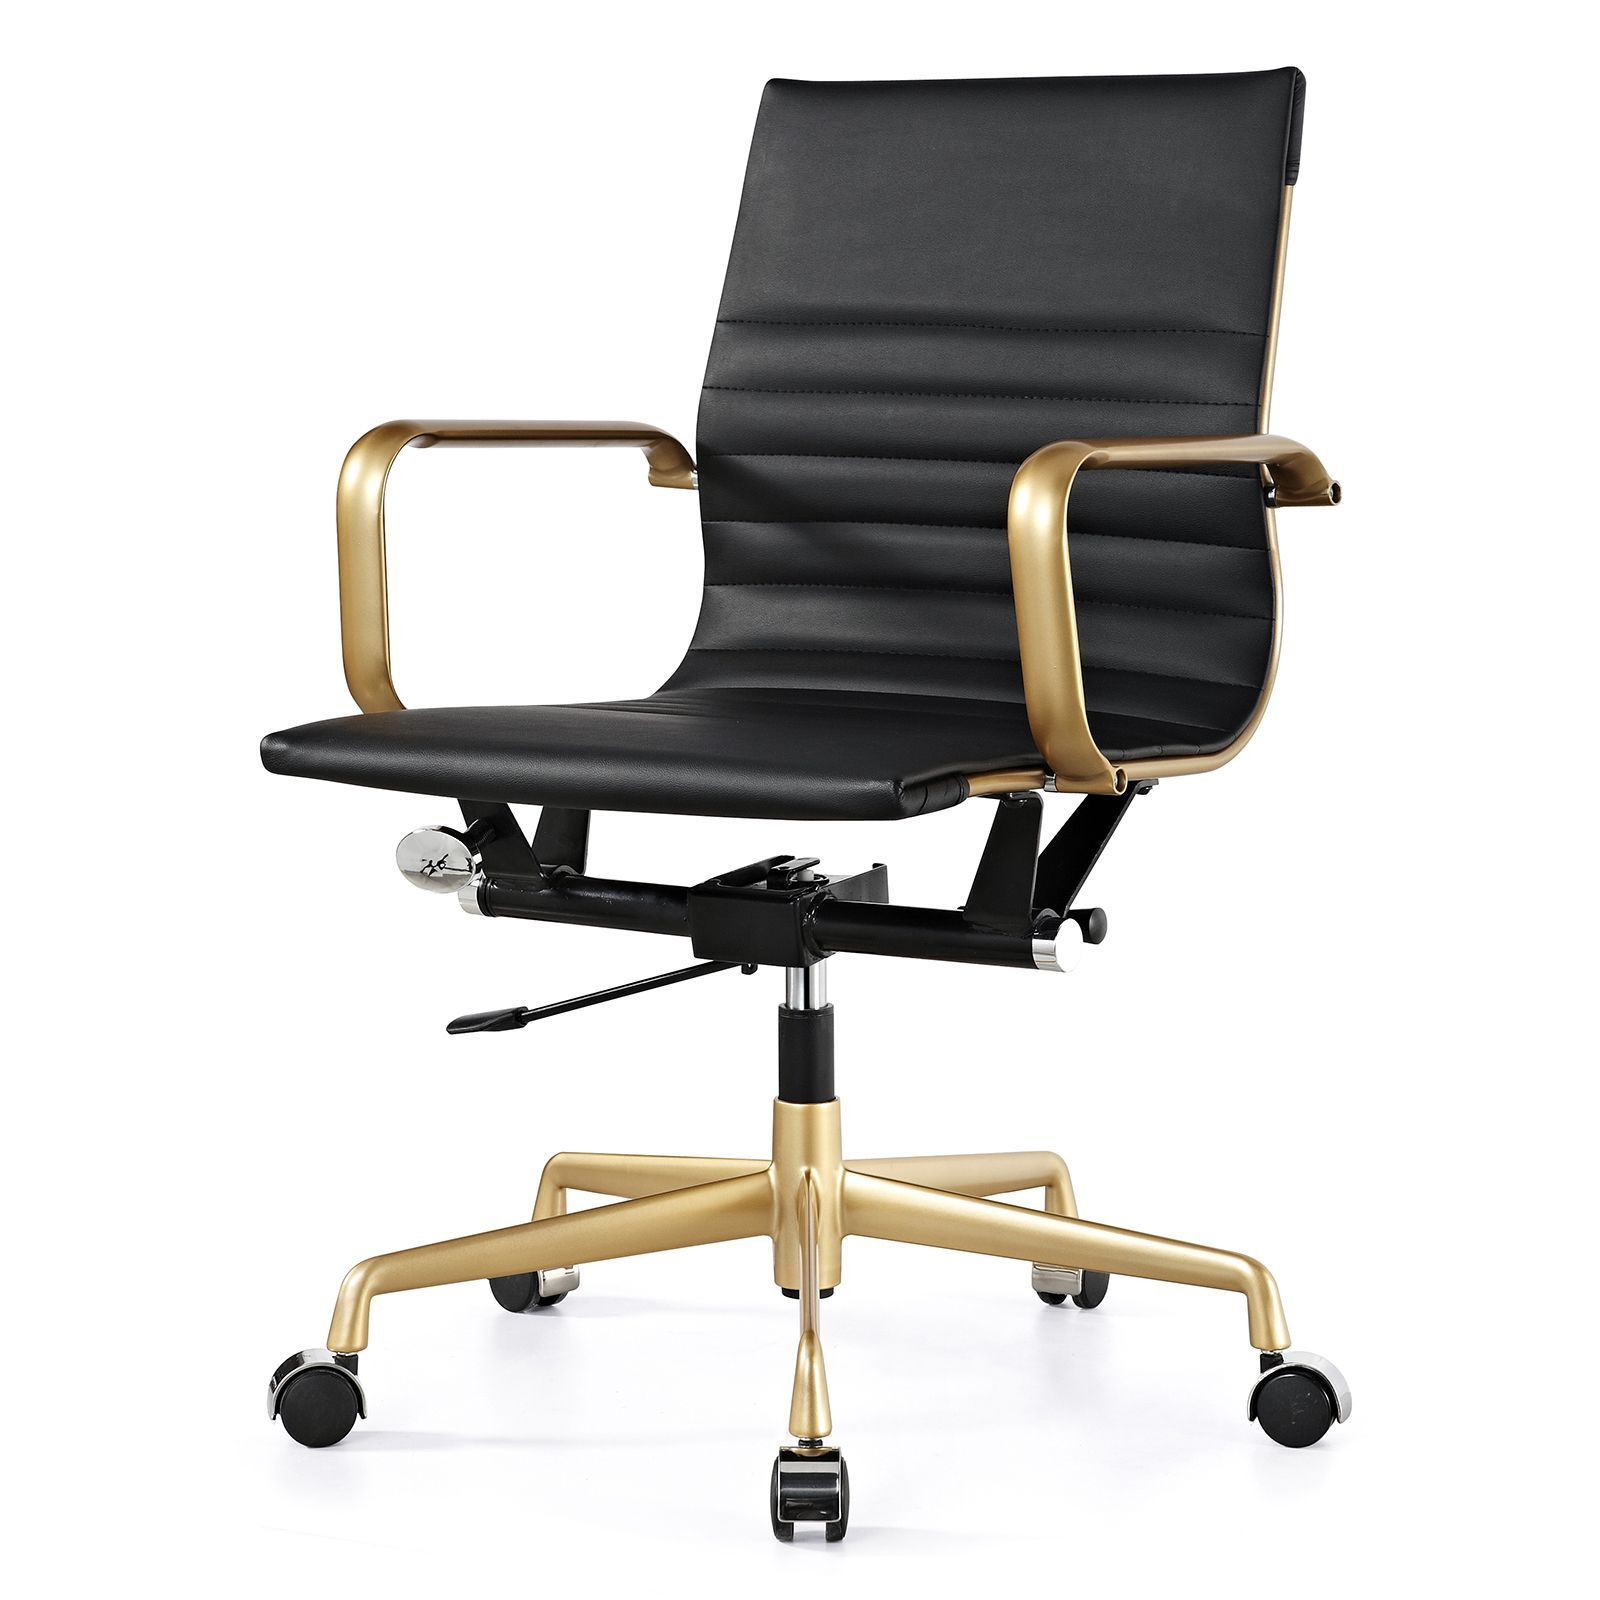 This Stylish Office Chair Will Keep You Cool And Productive Throughout The  Day. It Features